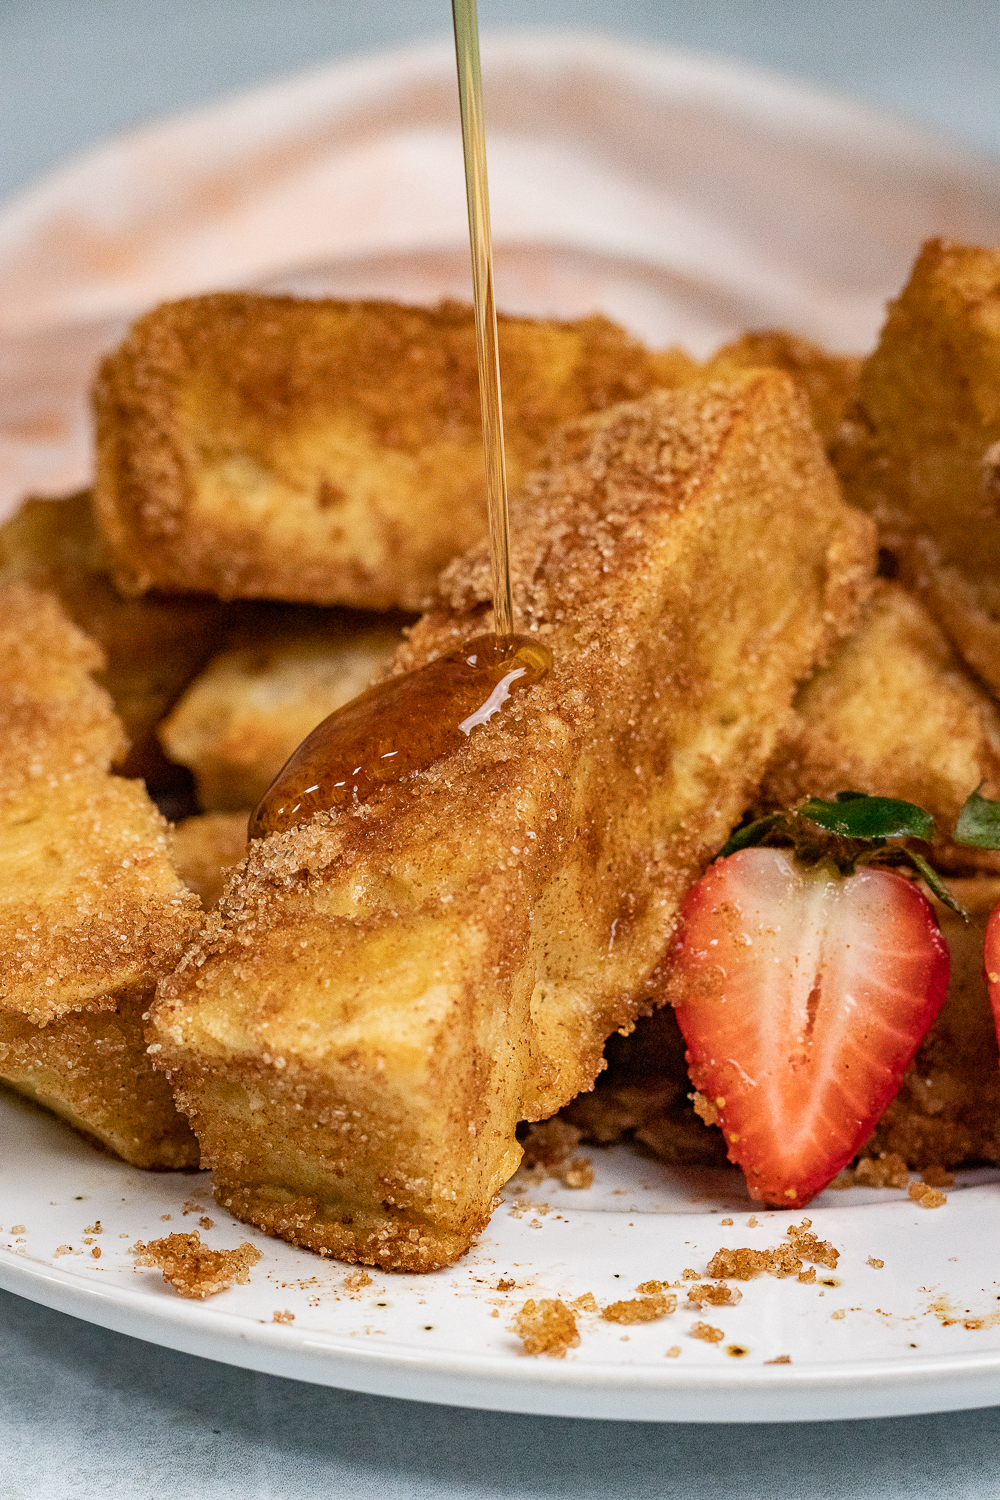 Maple syrup is poured over cinnamon sugar French toast sticks that were cooked on a griddle.